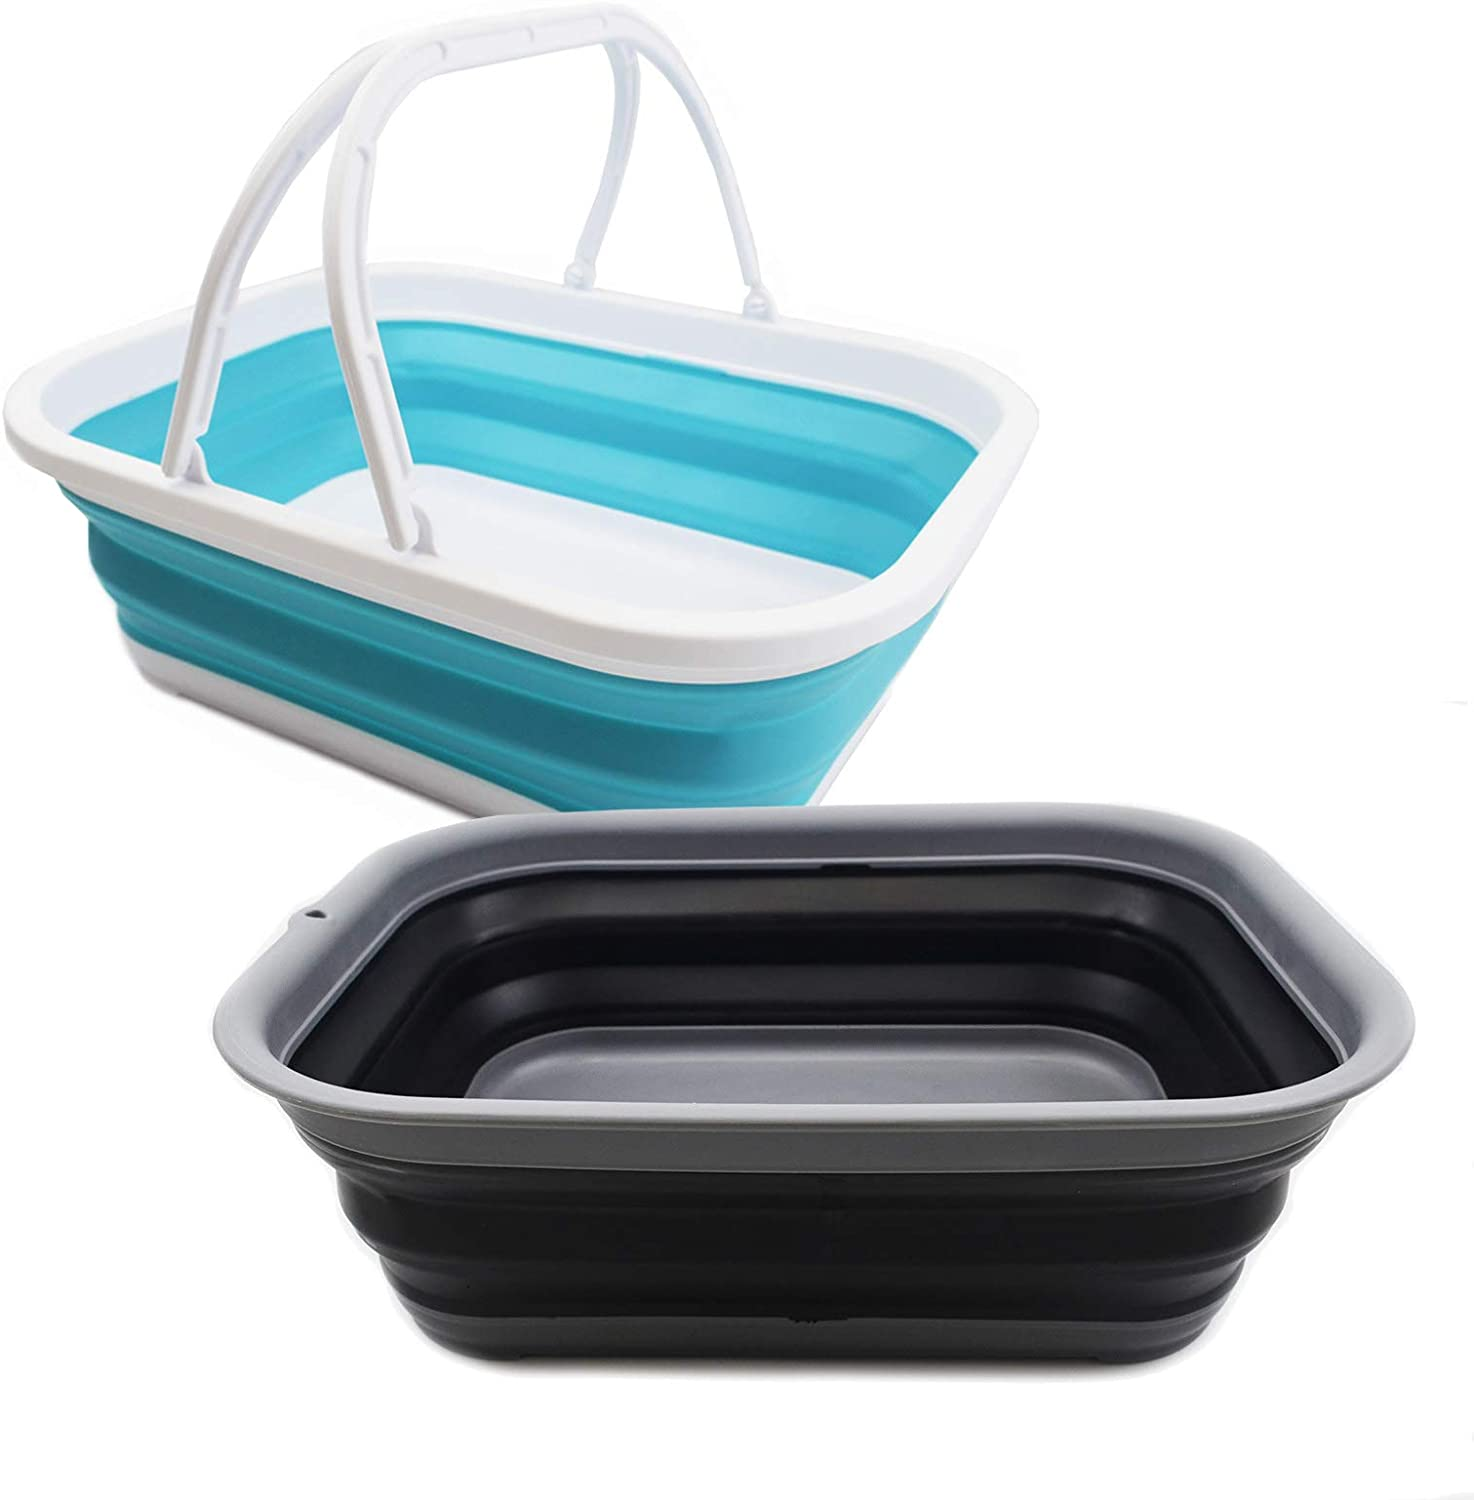 SAMMART 12L(3.17Gallon)+12L(3.17Gallon) Collapsible Tub with Handle & Collapsible Tub - Portable Outdoor Picnic Basket - Foldable Shopping Bag